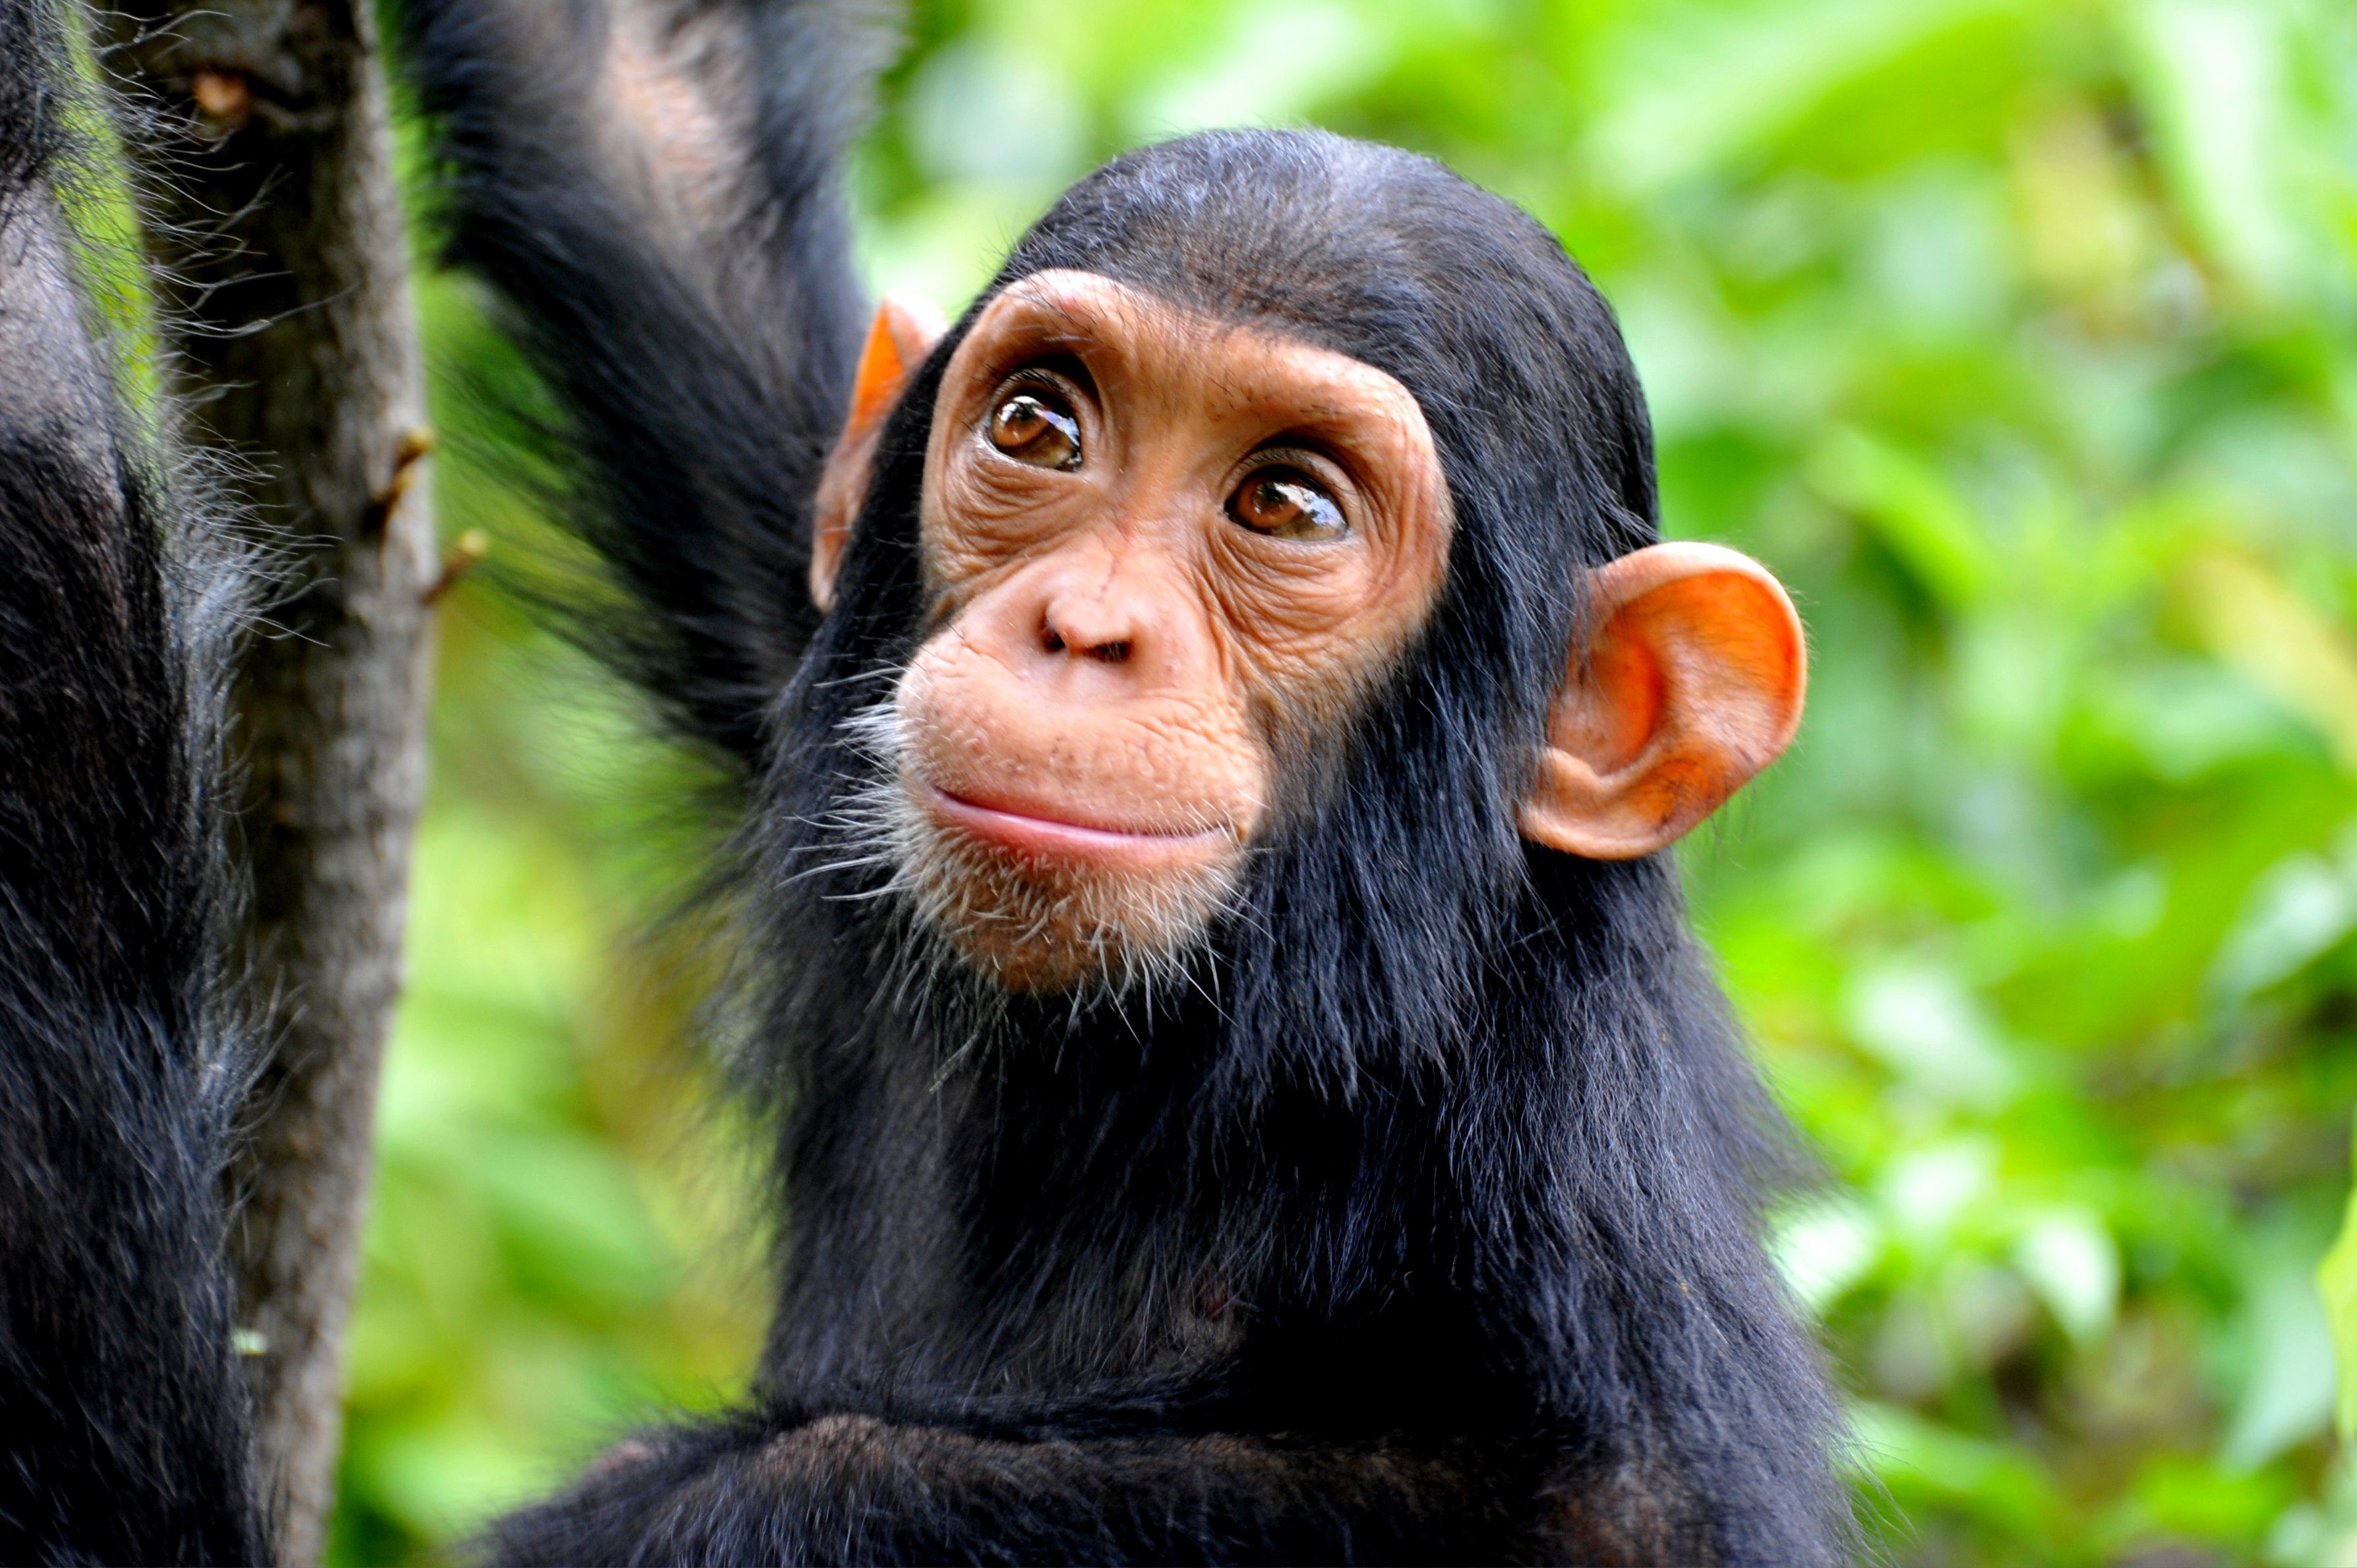 Keeping and Caring for Chimpanzees as Pets